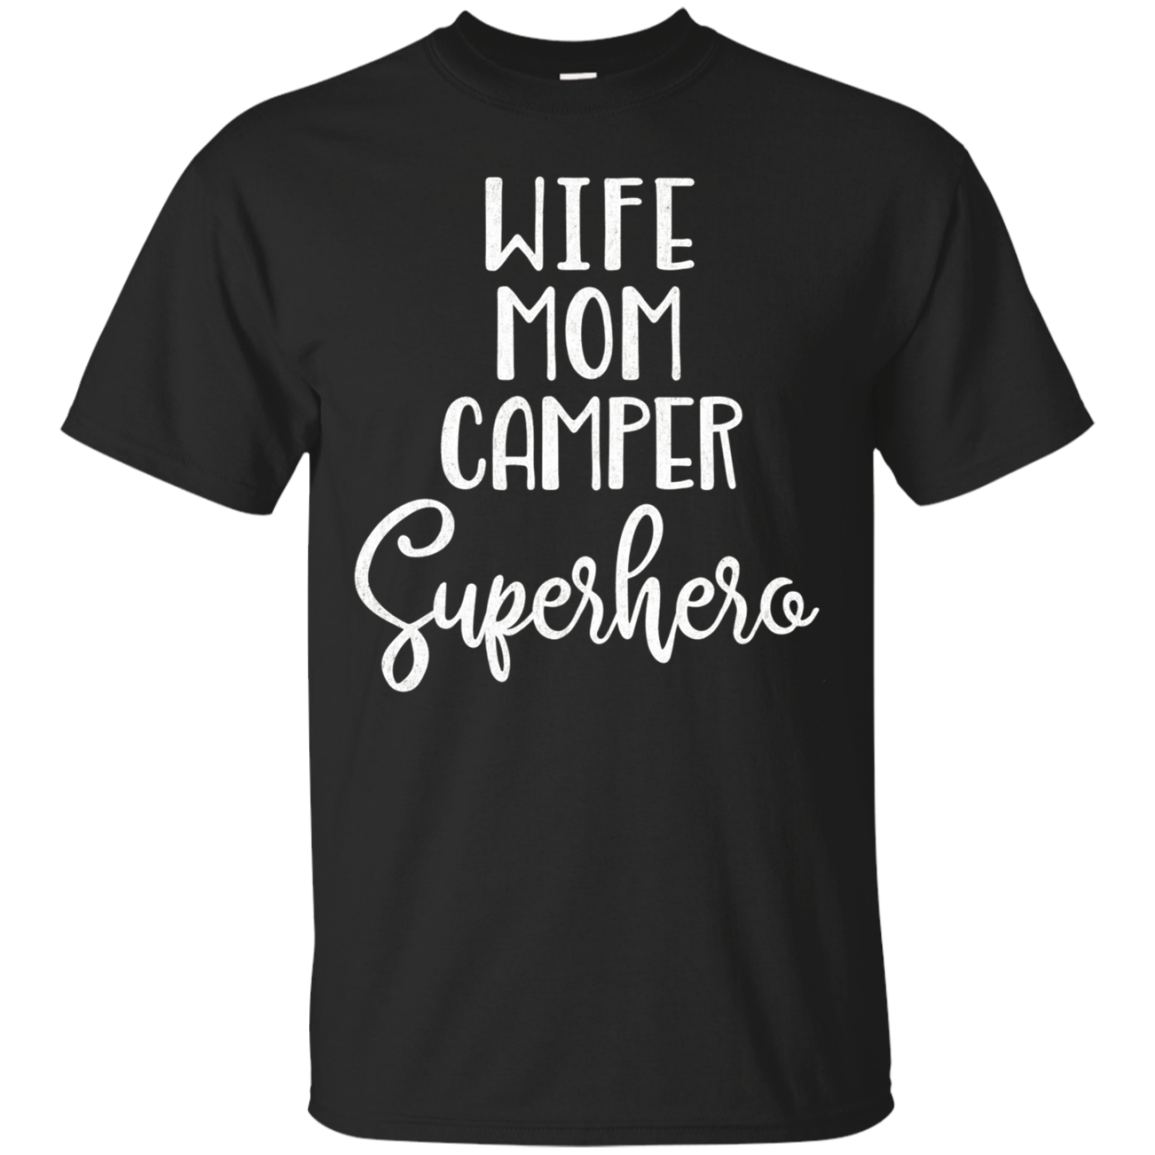 Mother's Day Shirt Camper - Wife Mom Camper Superhero Tshirt